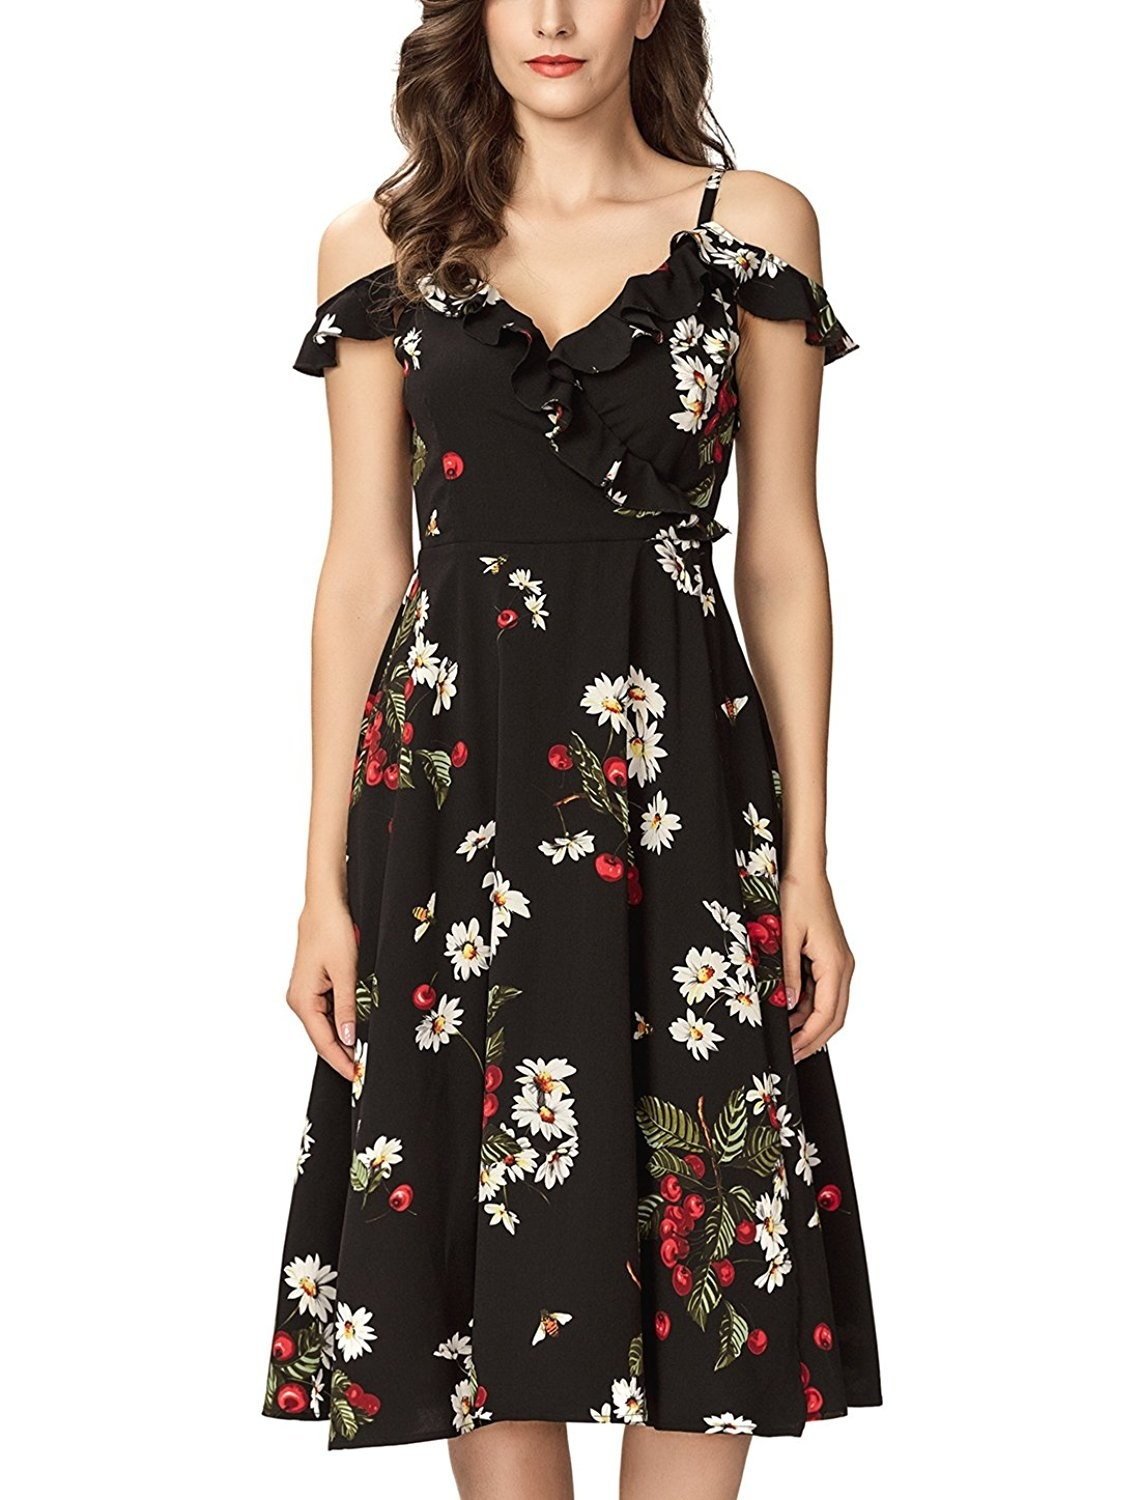 """Promising review: """"This dress is gorgeous! It's very appropriate to wear to a summer evening wedding. It's well-made and fits true to size. It fits me like a dream. Mine is the black one, and I'm debating on getting the white one, as well. That's how much I like it."""" —Cool nerdGet it from Amazon for $34.95 (available in sizes XS-XXL and in three colors)."""